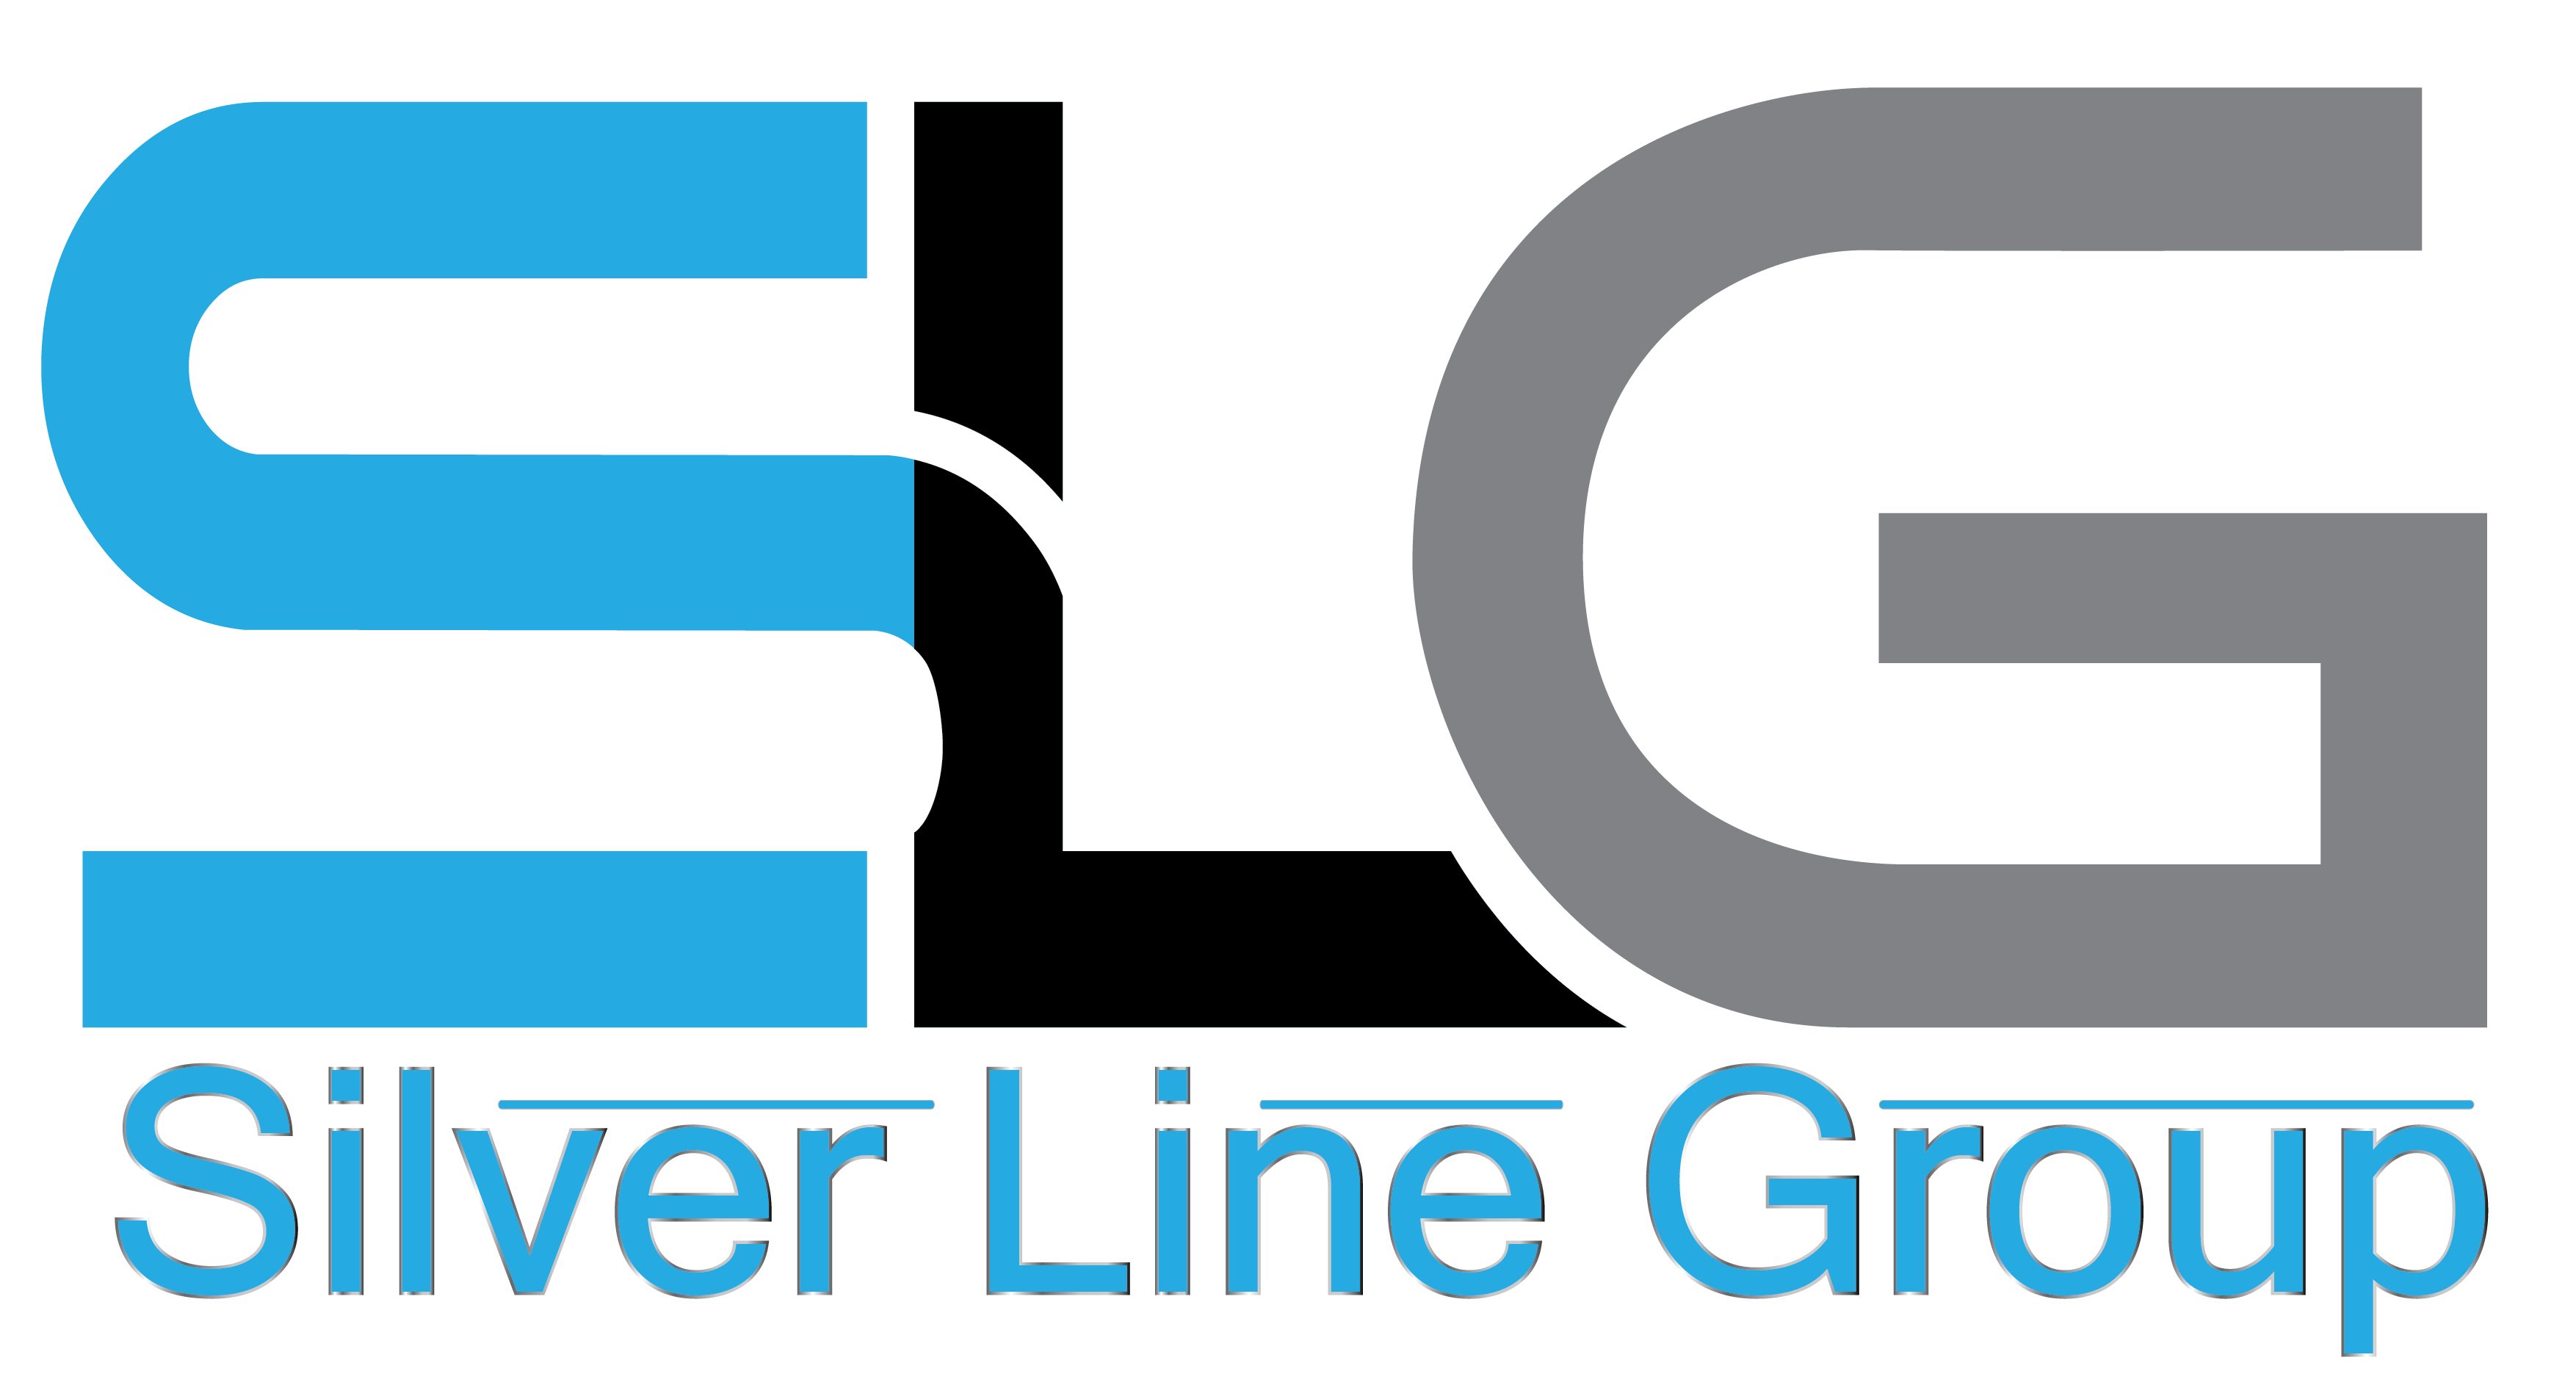 Silver Line Group